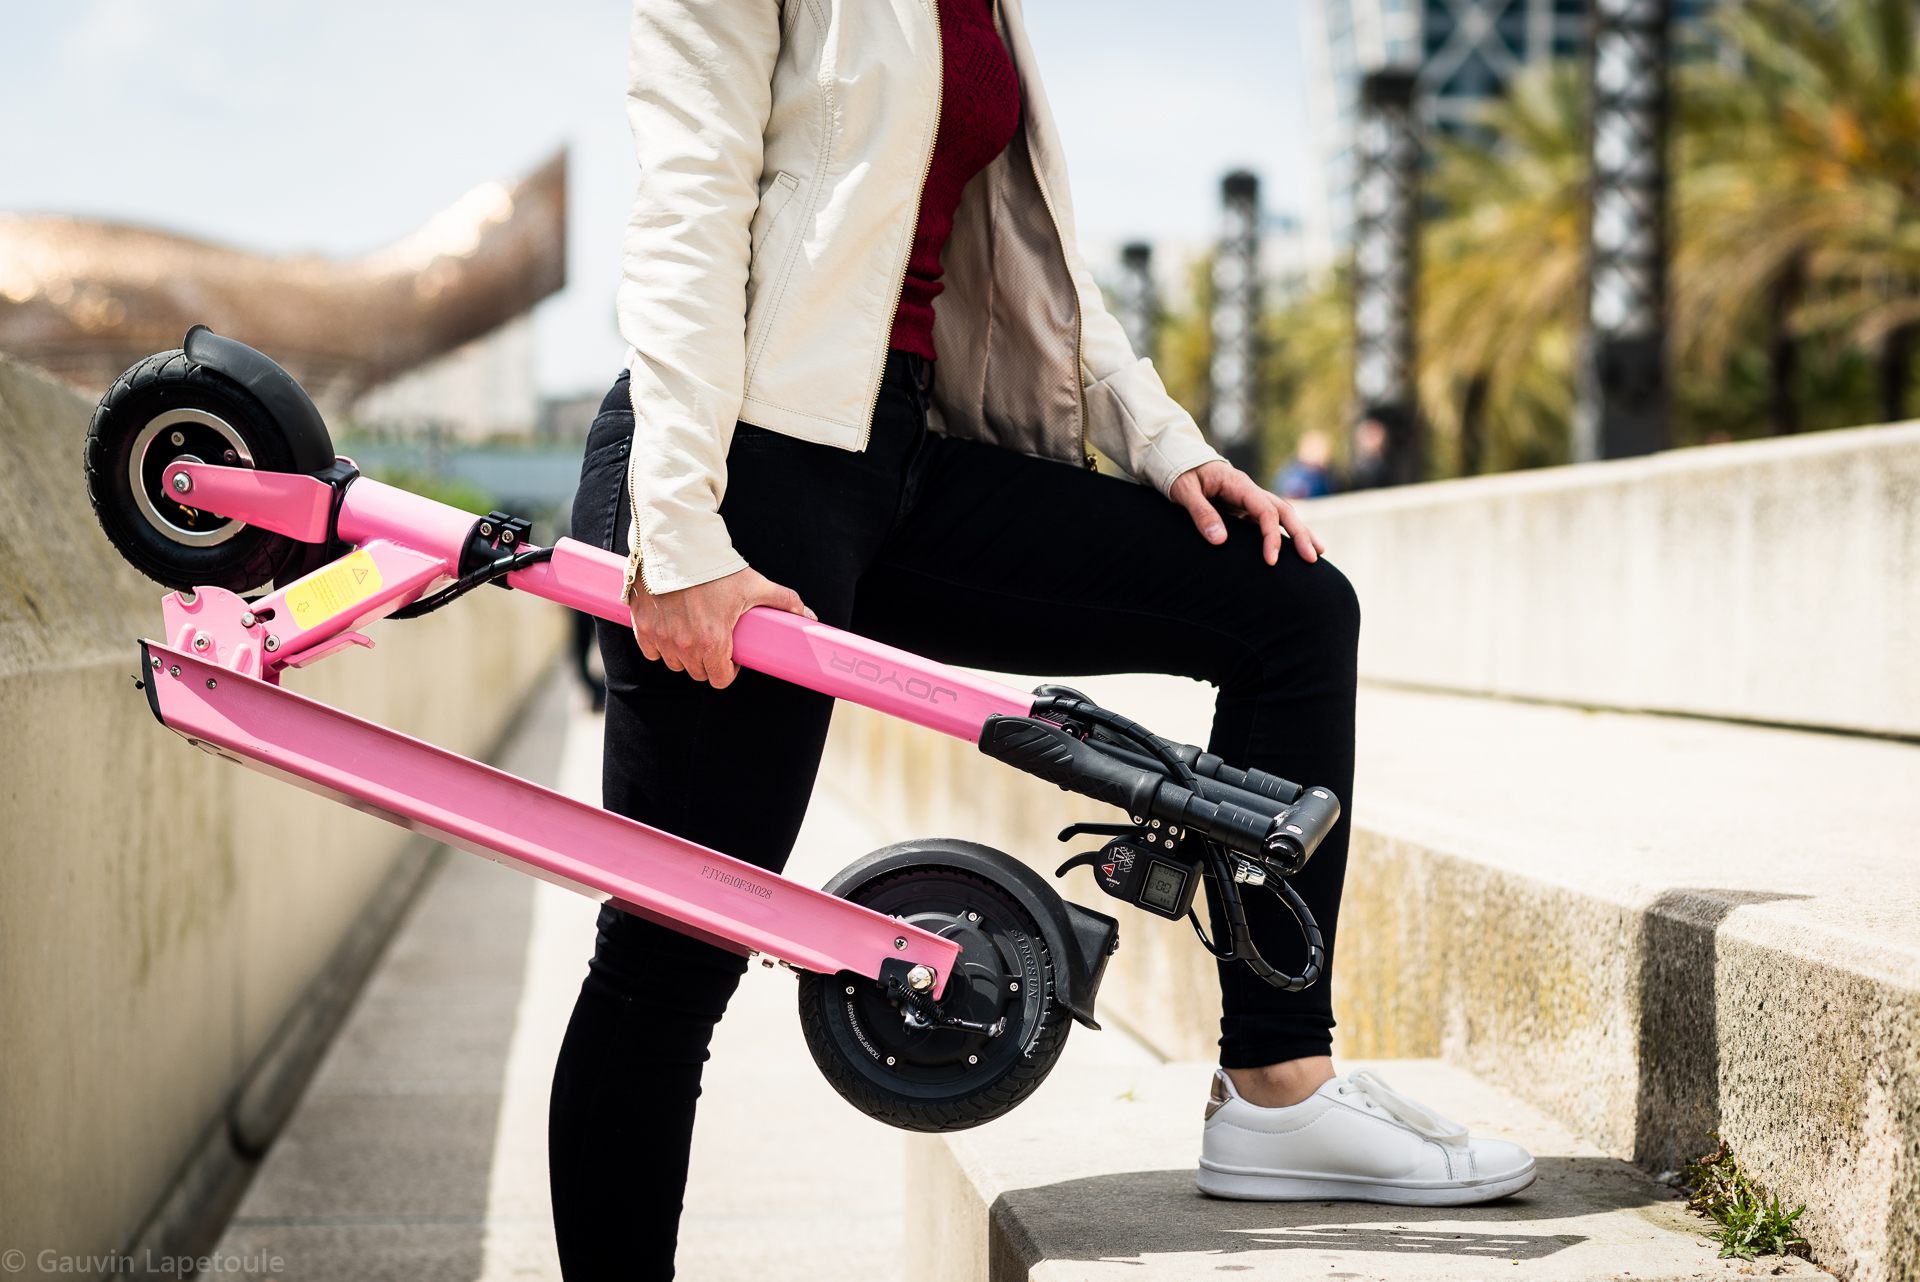 Electri scooter Joyor A1 Pink